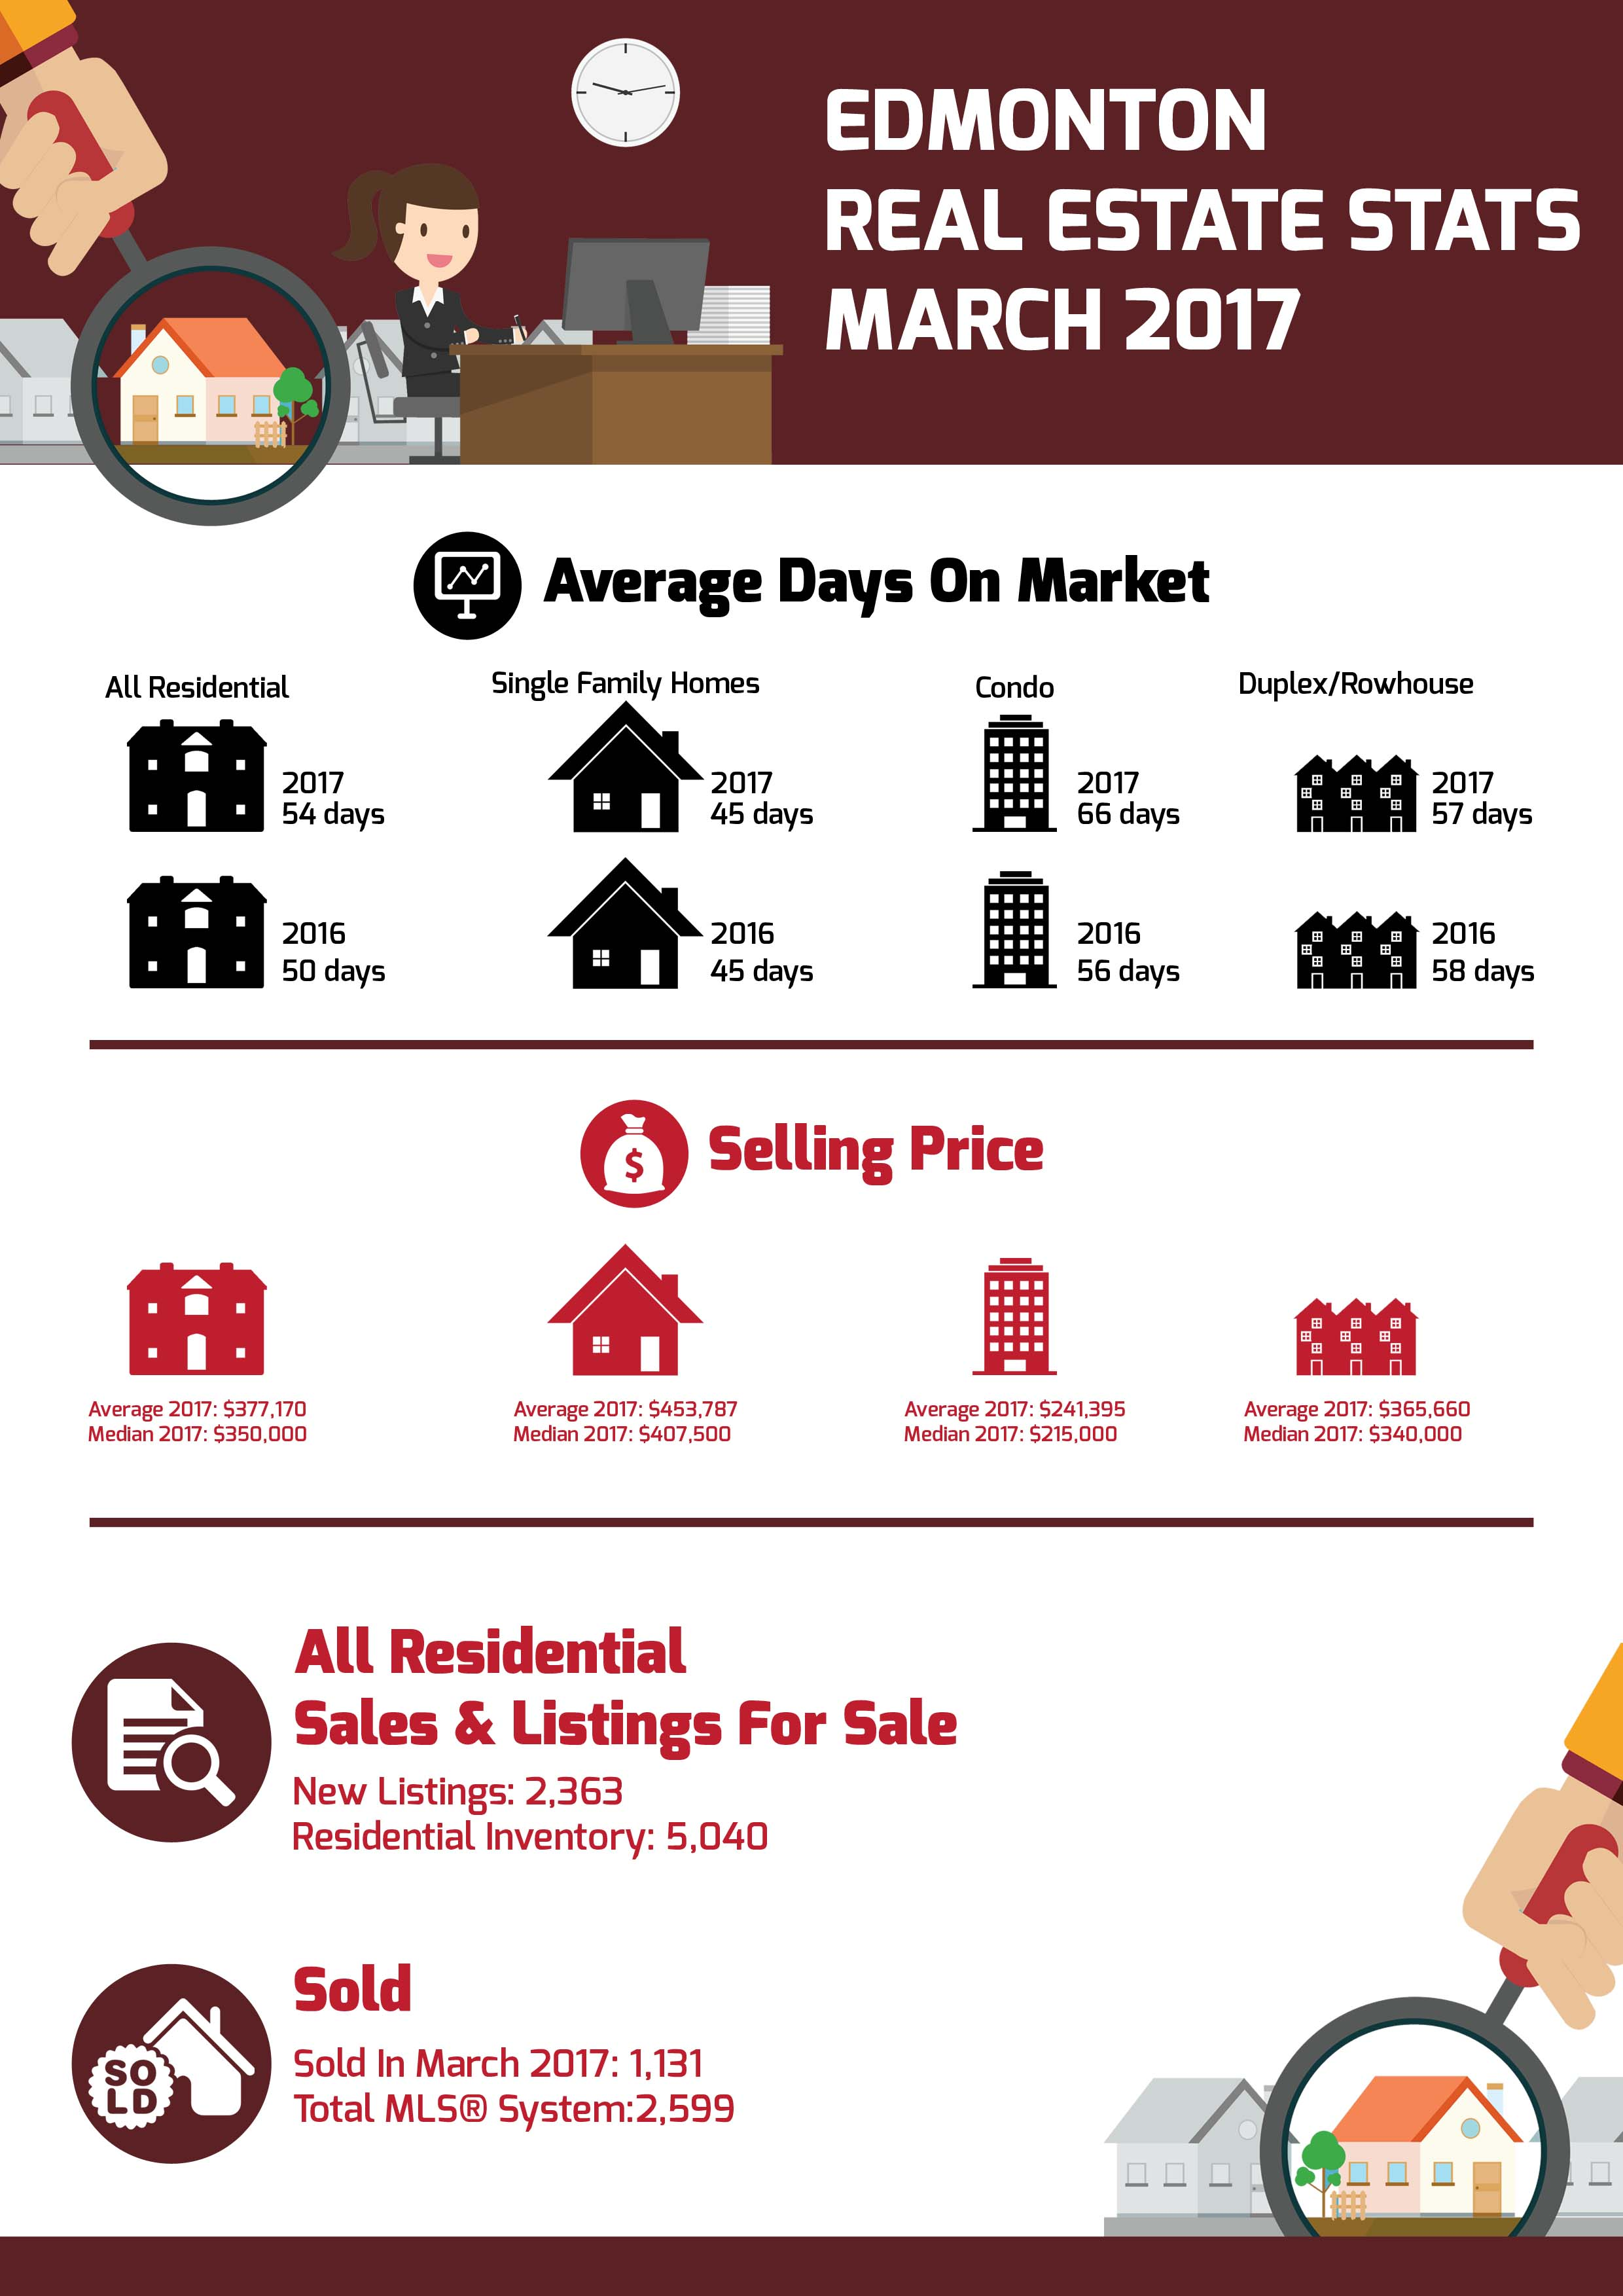 March 2017 Real Estate Stats